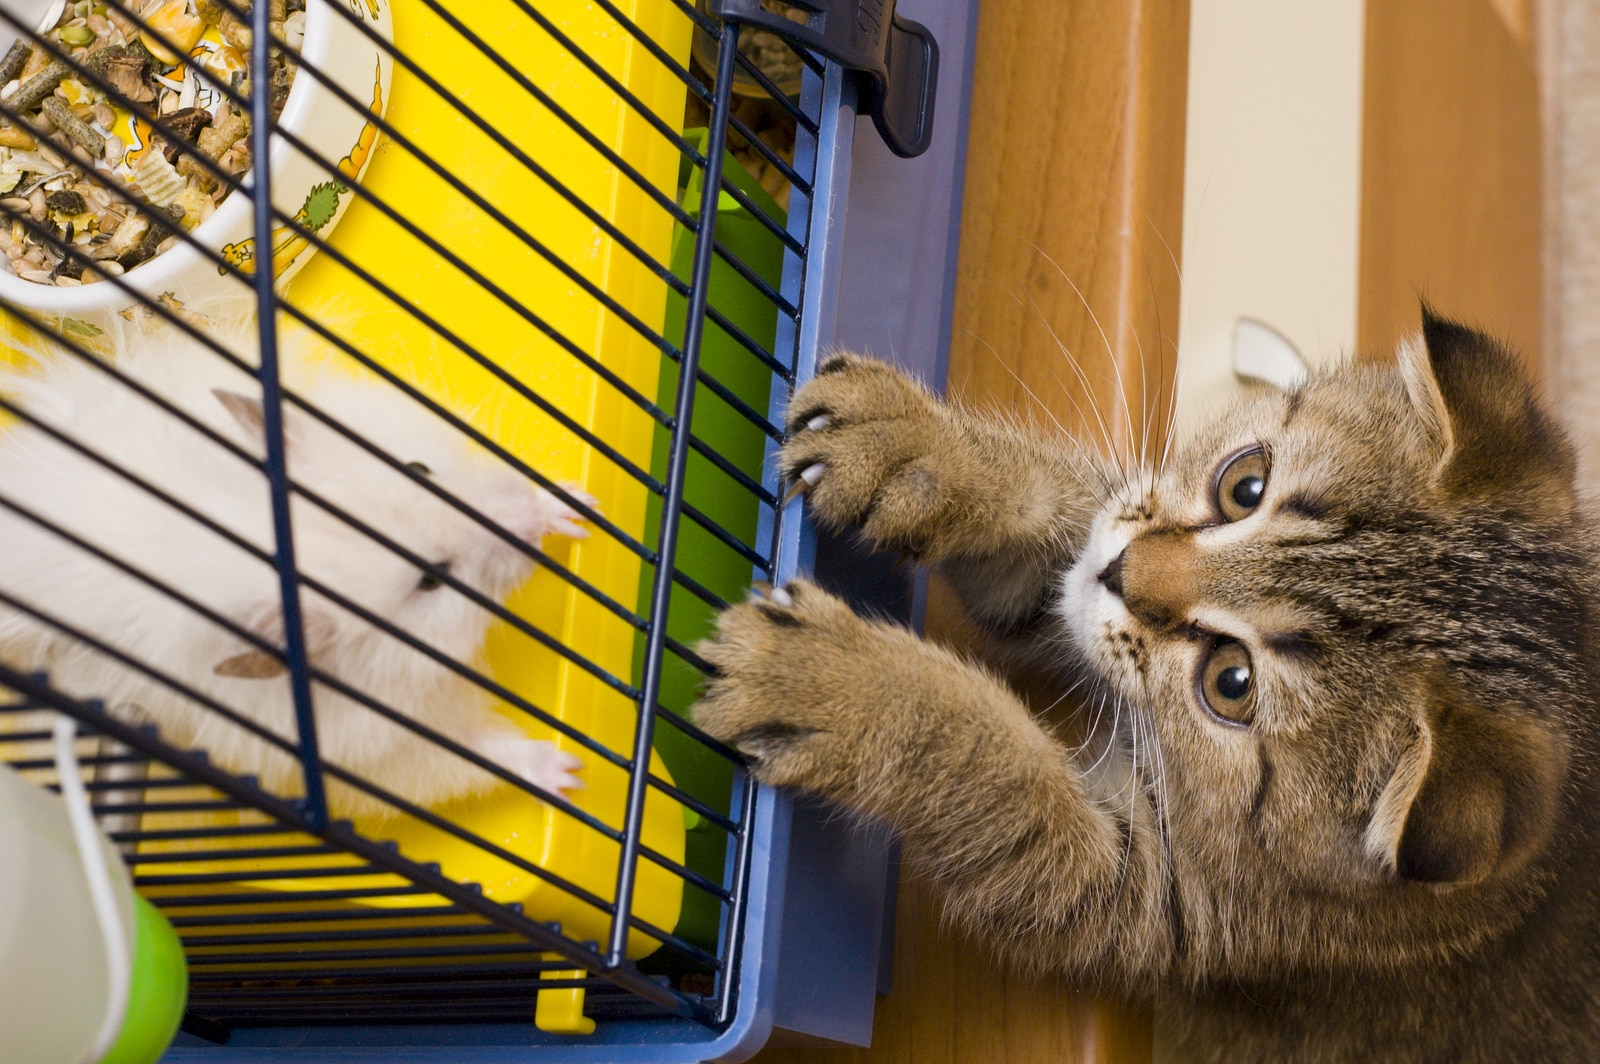 Little tabby kitten stangs up looking at white mouse in cage